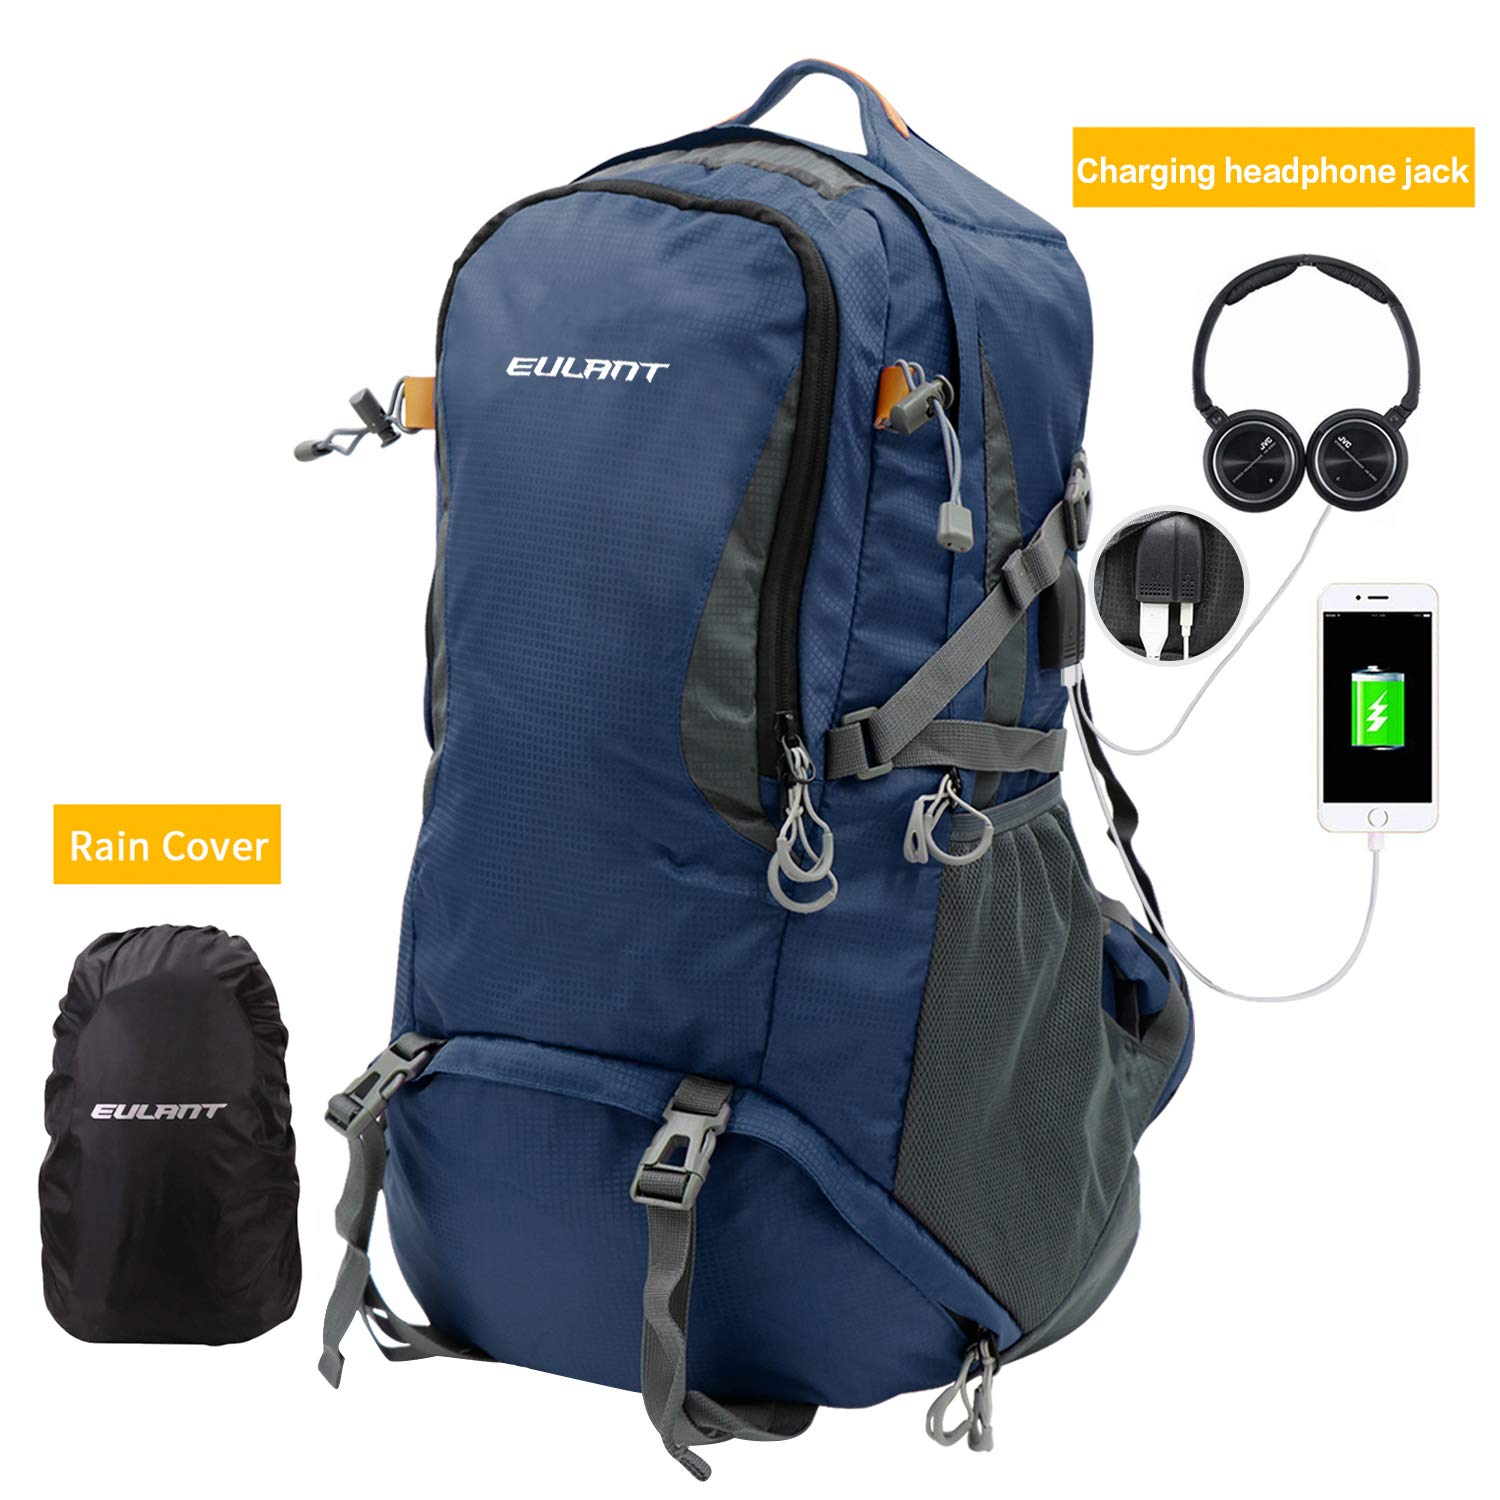 Water Resistant Packable for Climbing Camping Touring Mountaineering 50L 60L Lightweight Packable Travel Hiking Backpack Anti-Theft College Backpack with USB Charging Port EUALNT 40L